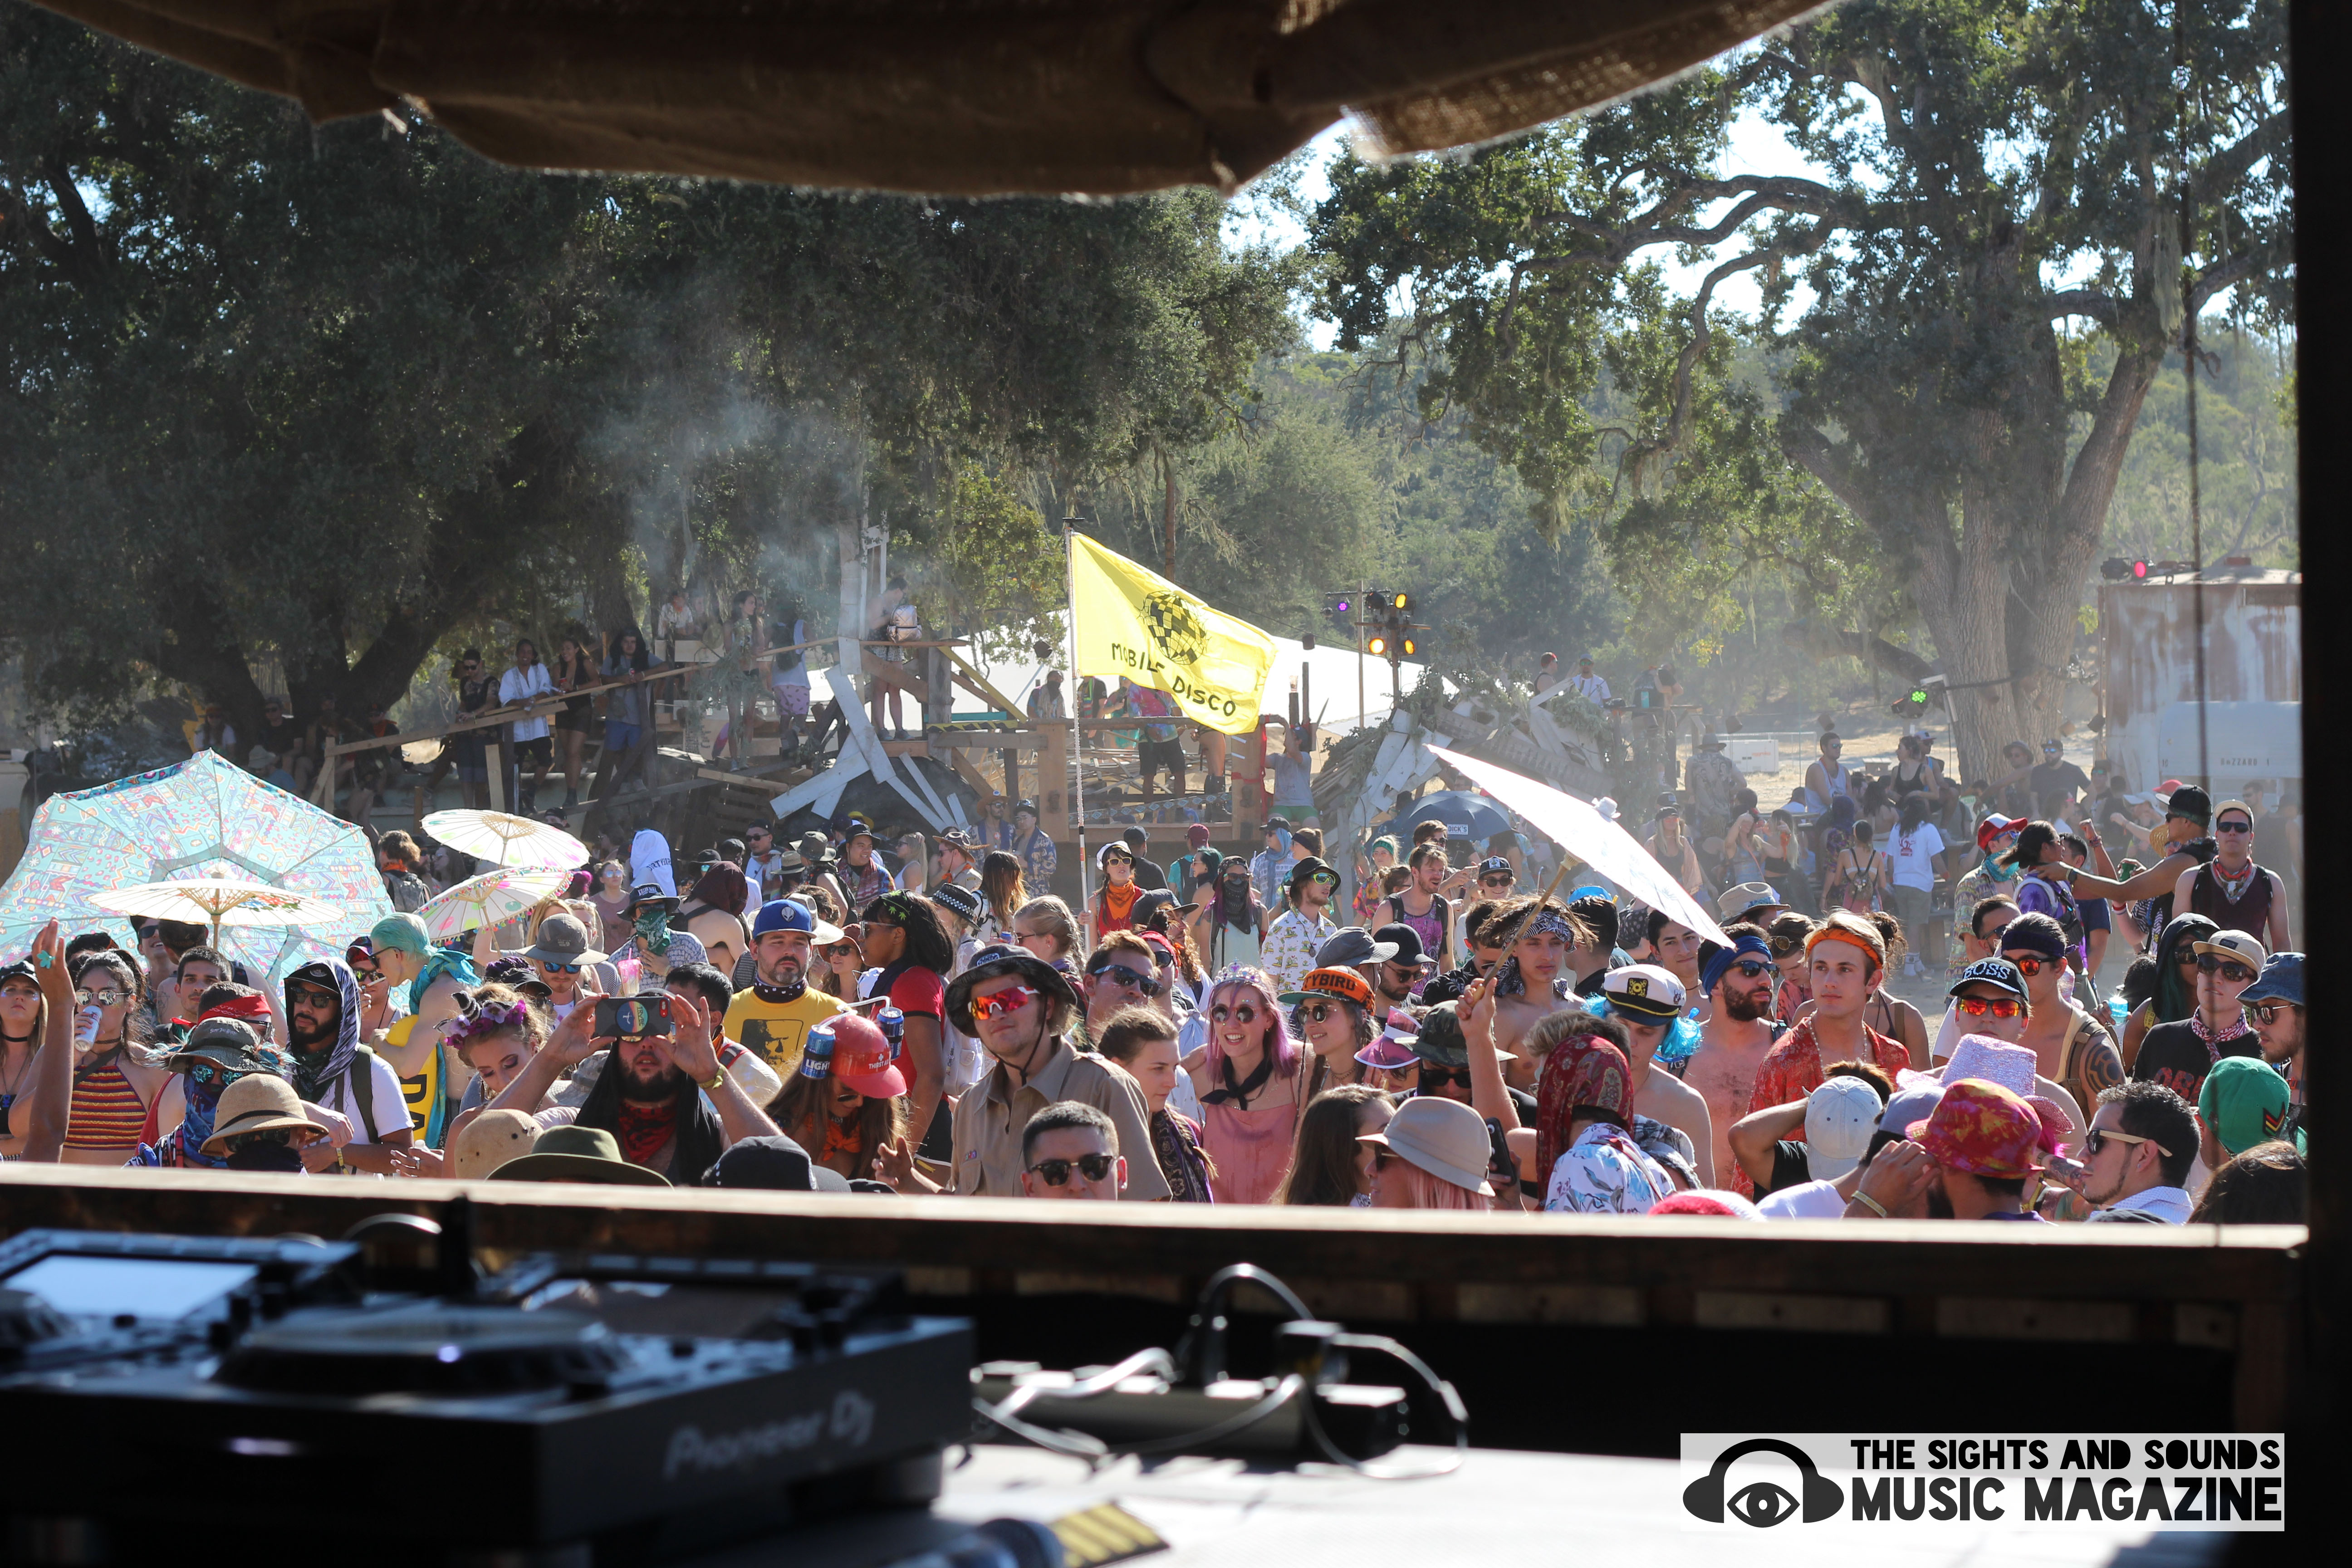 Dirtybird Campout 2017: It's More Than Just The Music